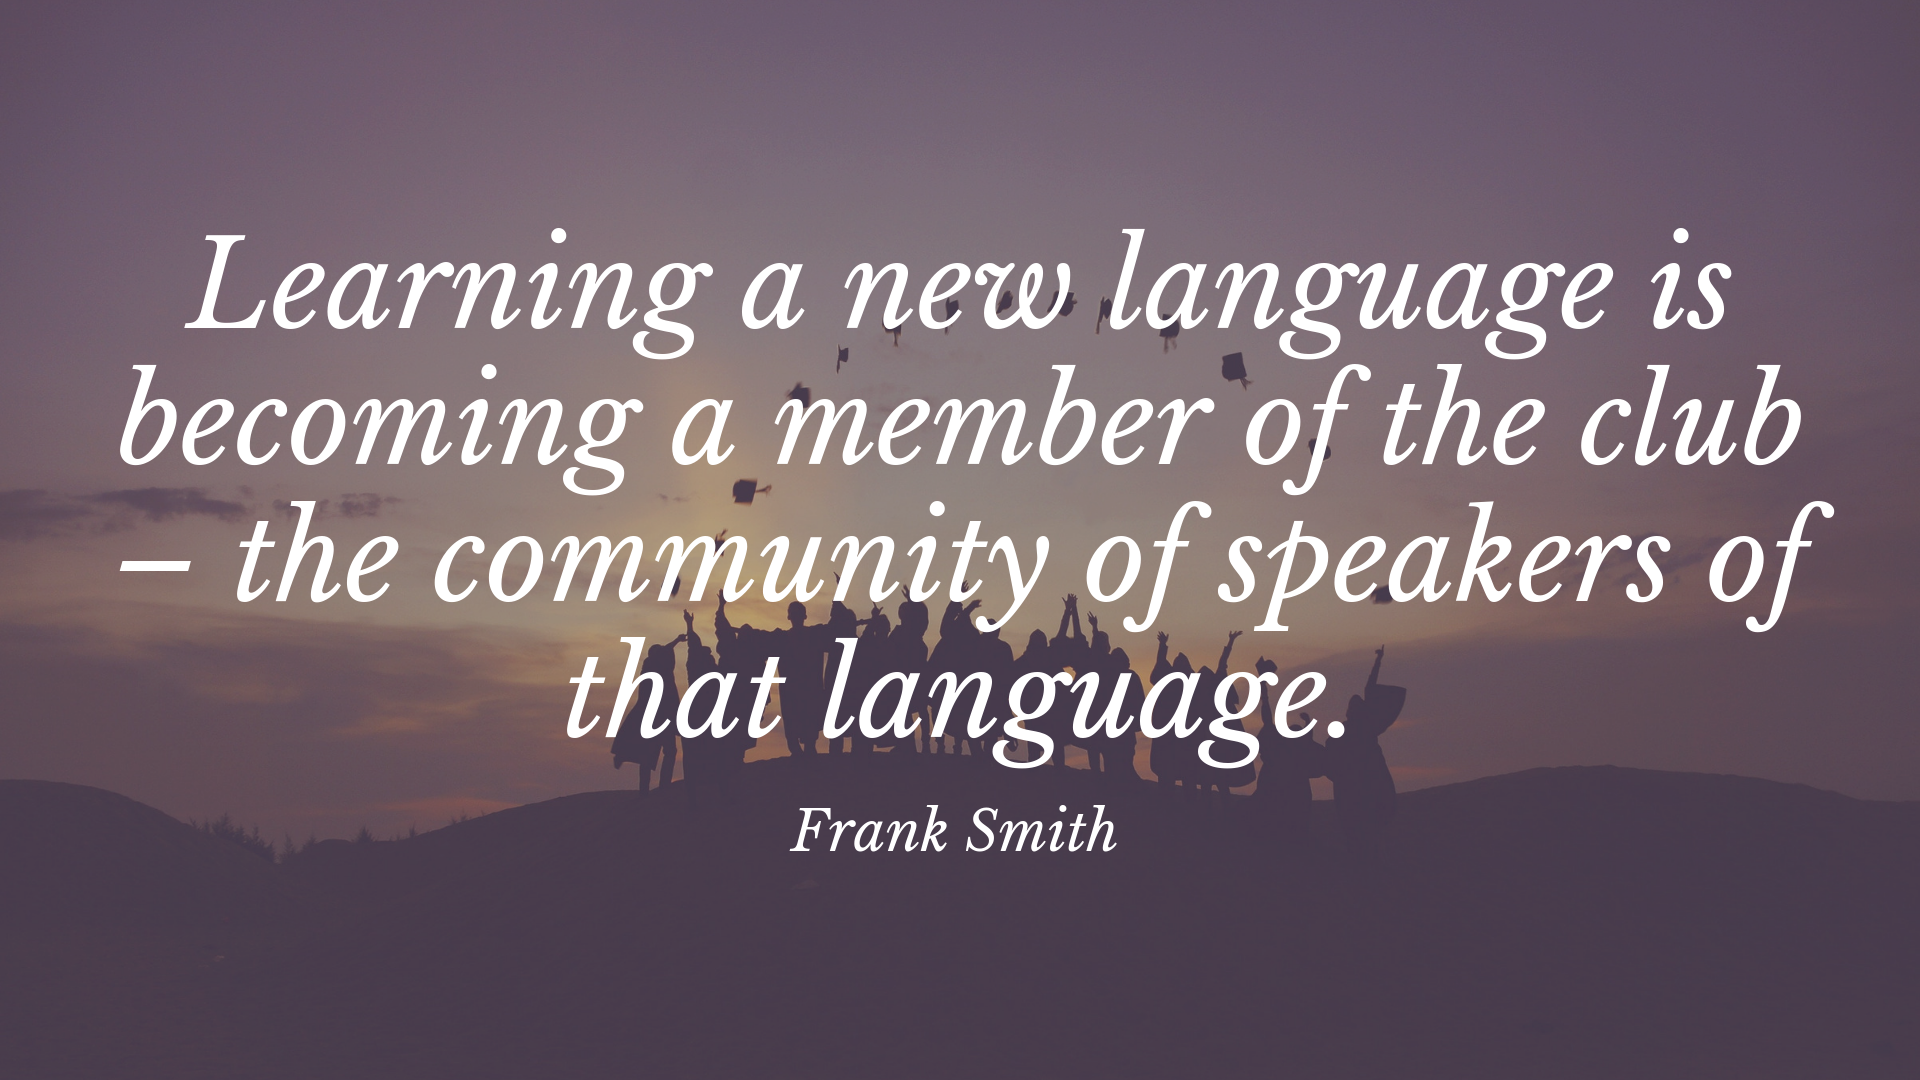 Learning a new language is becoming a member of the club – the community of speakers of that language. – Frank Smith